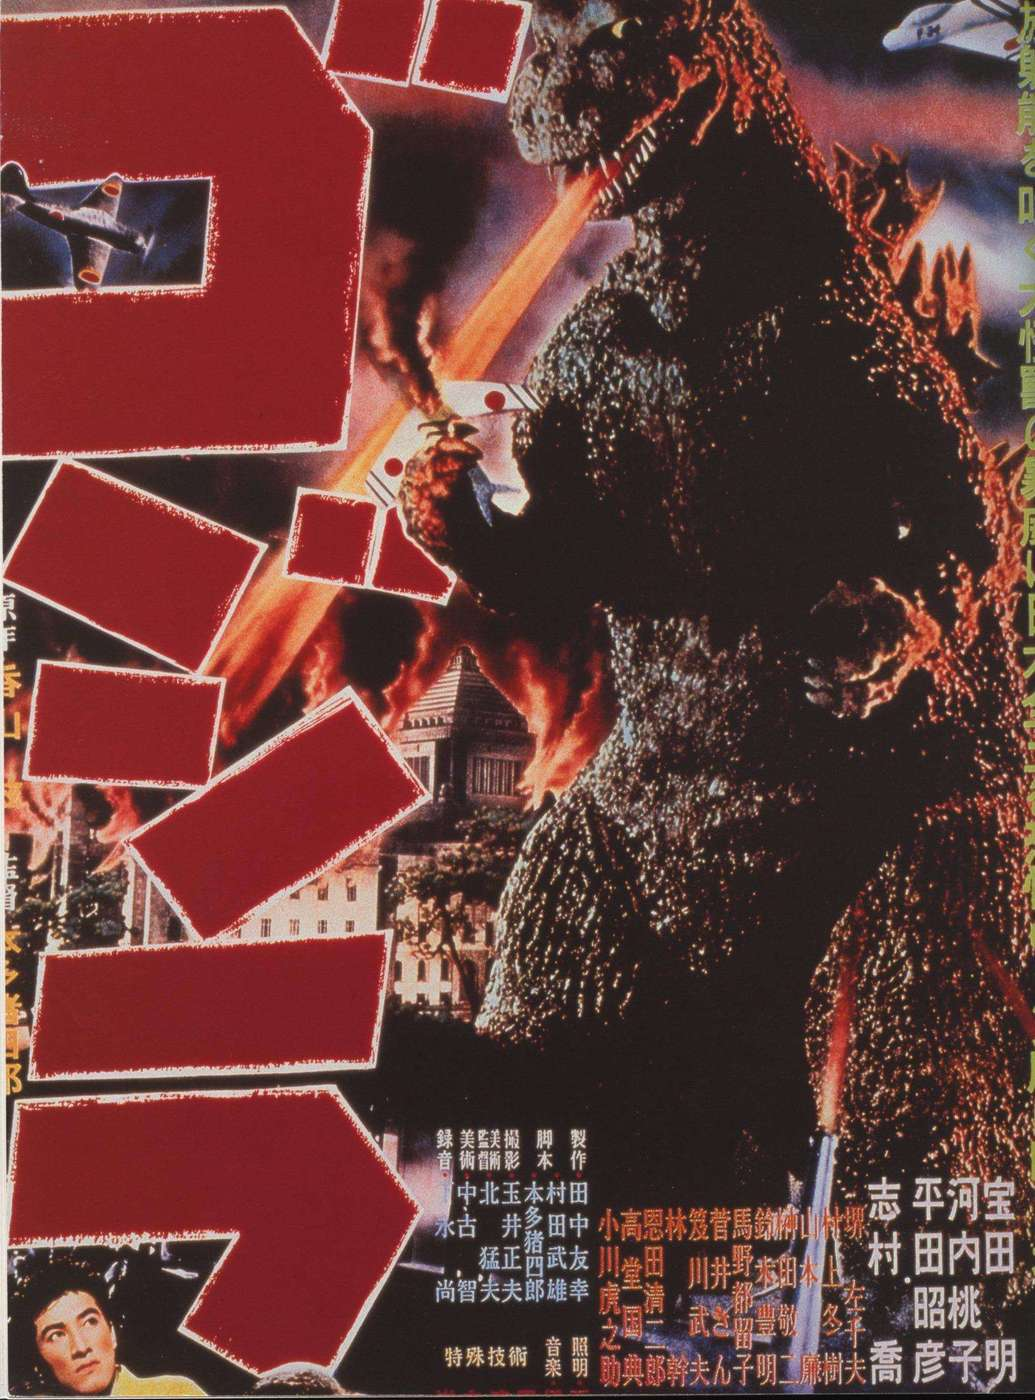 Caption right, opposite page: Godzilla, 1954, Film poster, Approx. 72 x 51 cm